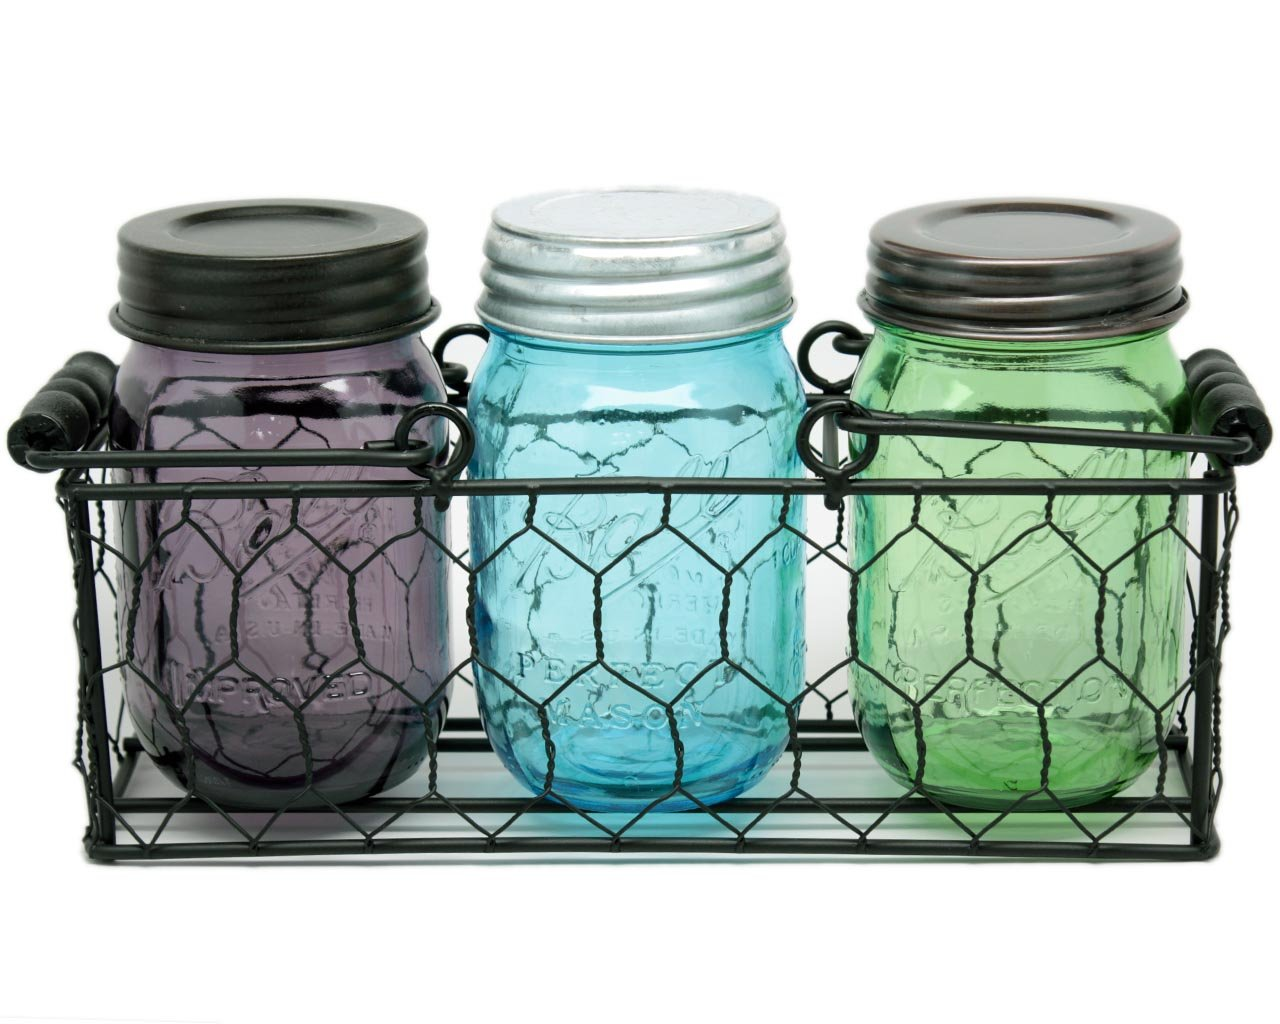 Amazon.com - Caddy for 3 Pint Mason Jars in Chicken Wire with Black ...